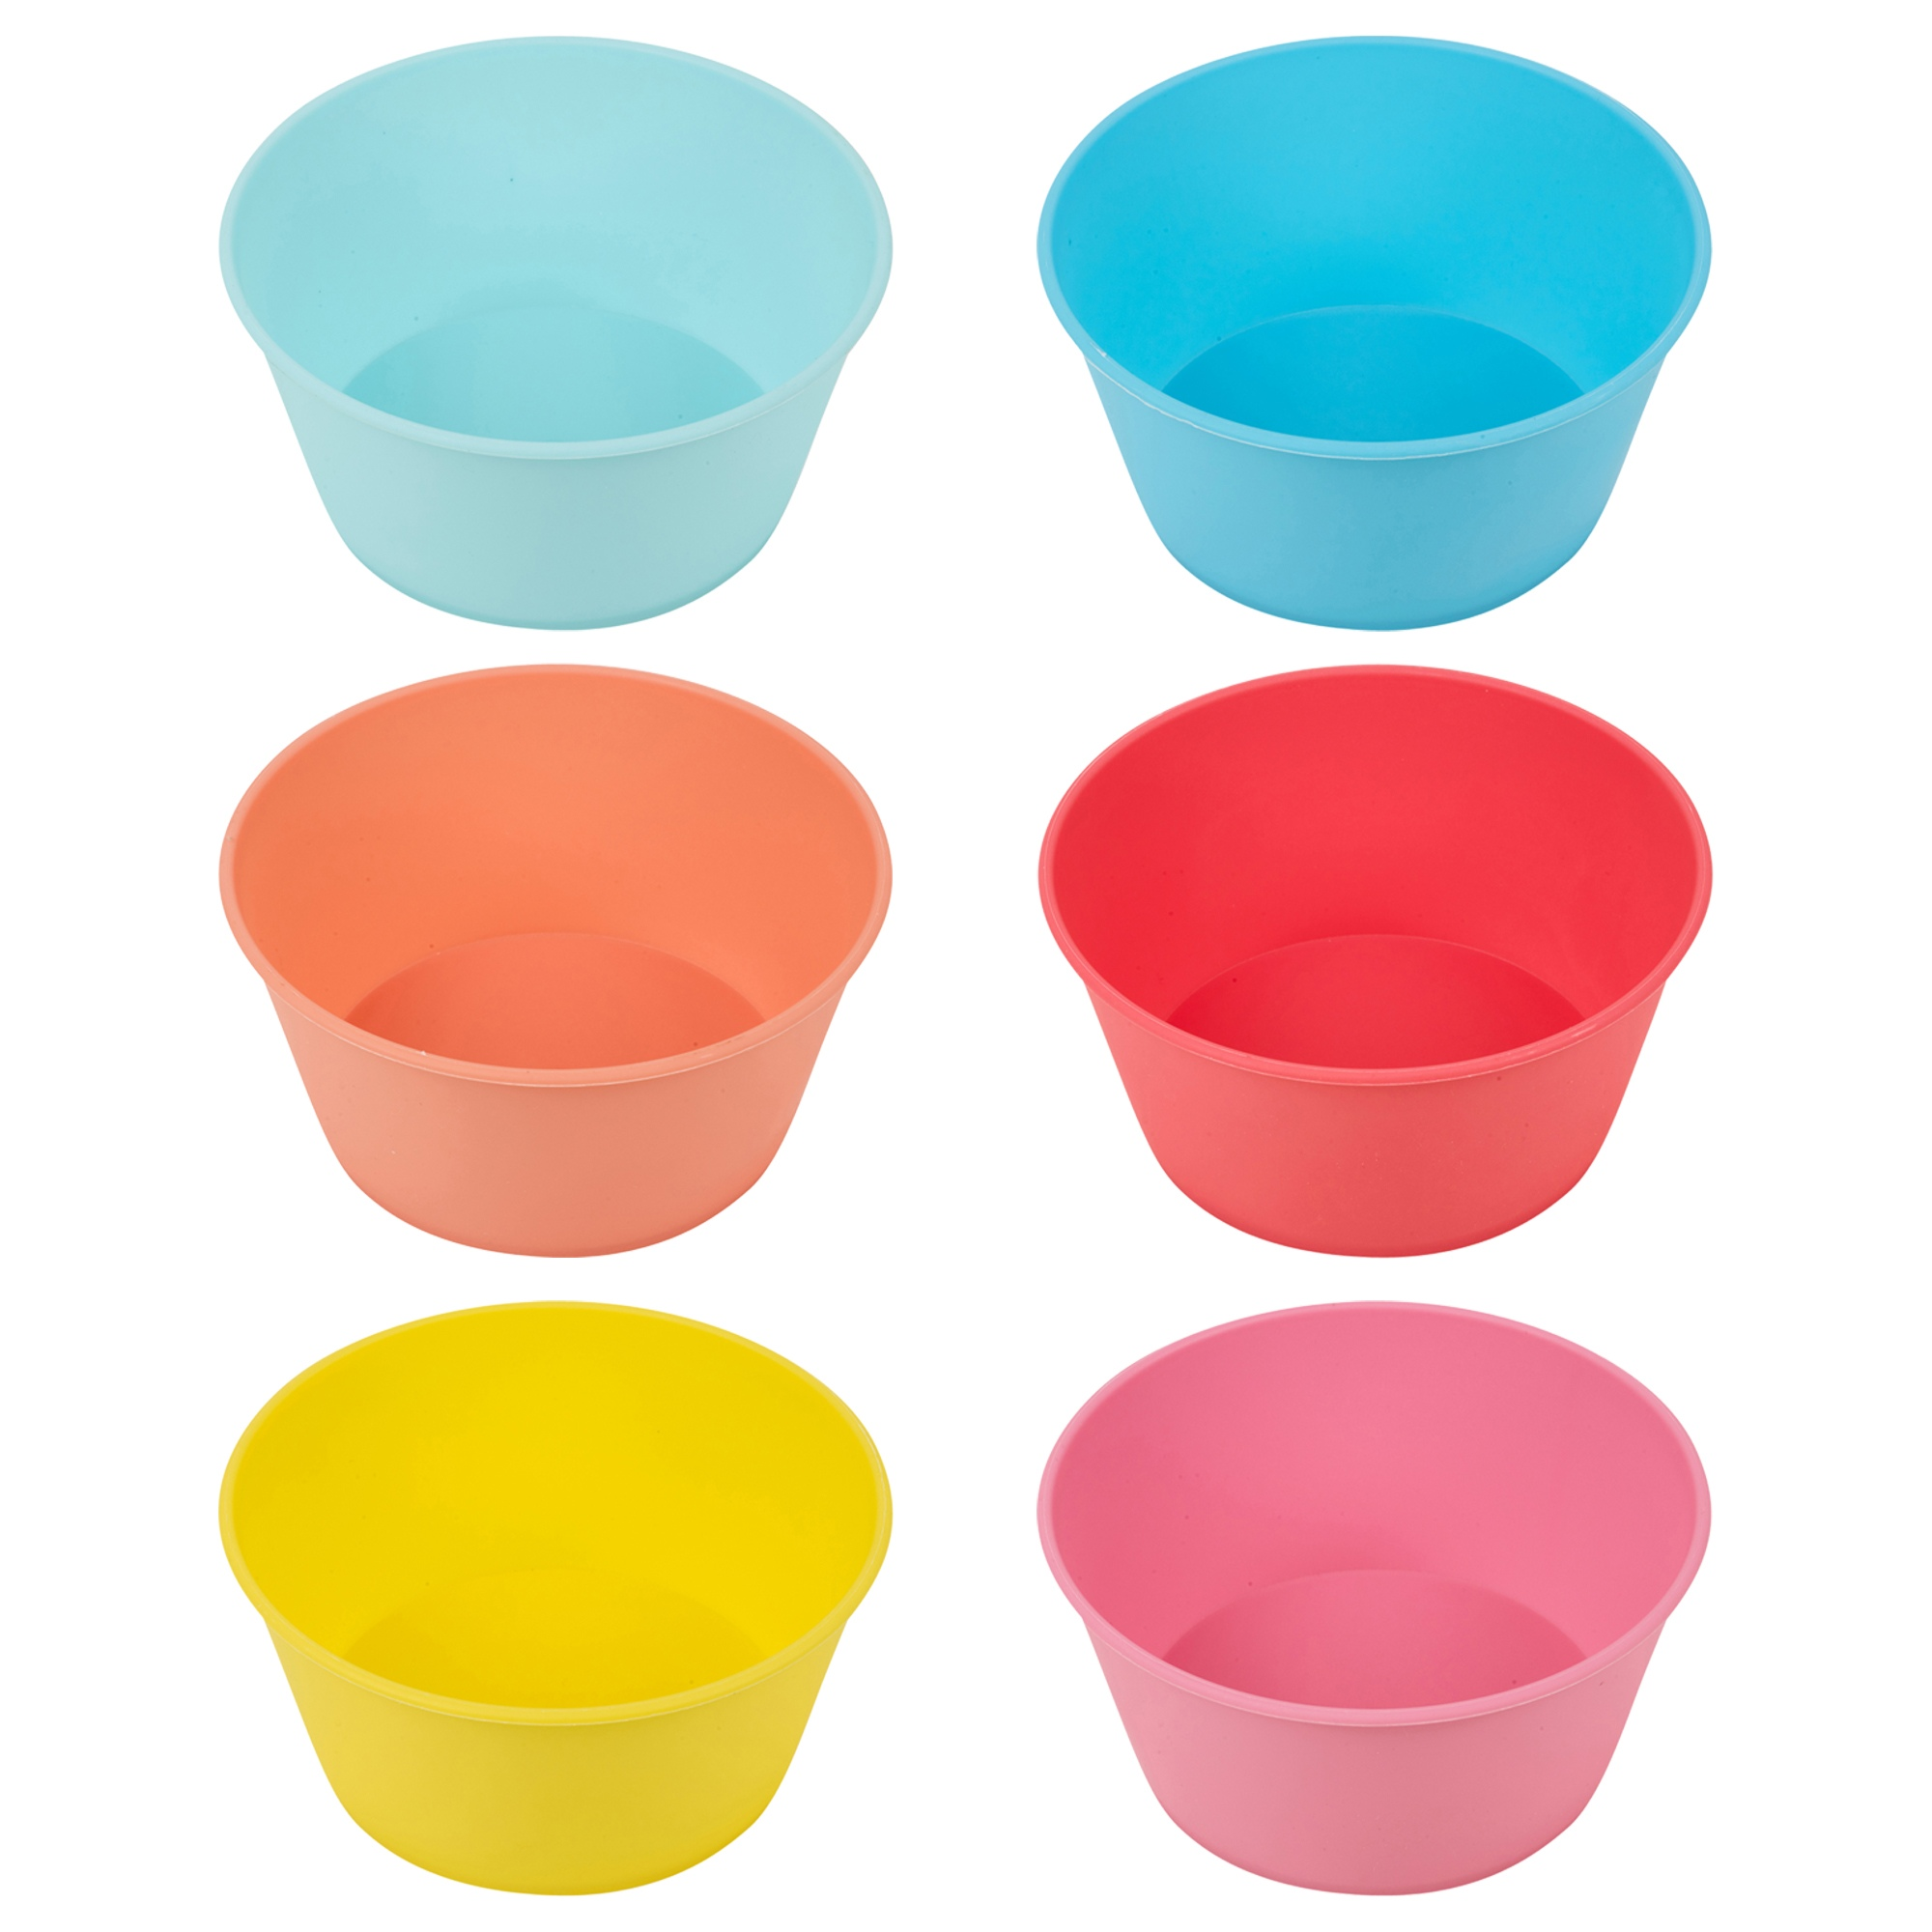 6x Colorful Reusable Plastic Outdoor Childrens Picnic Party Bowls and Plates Set